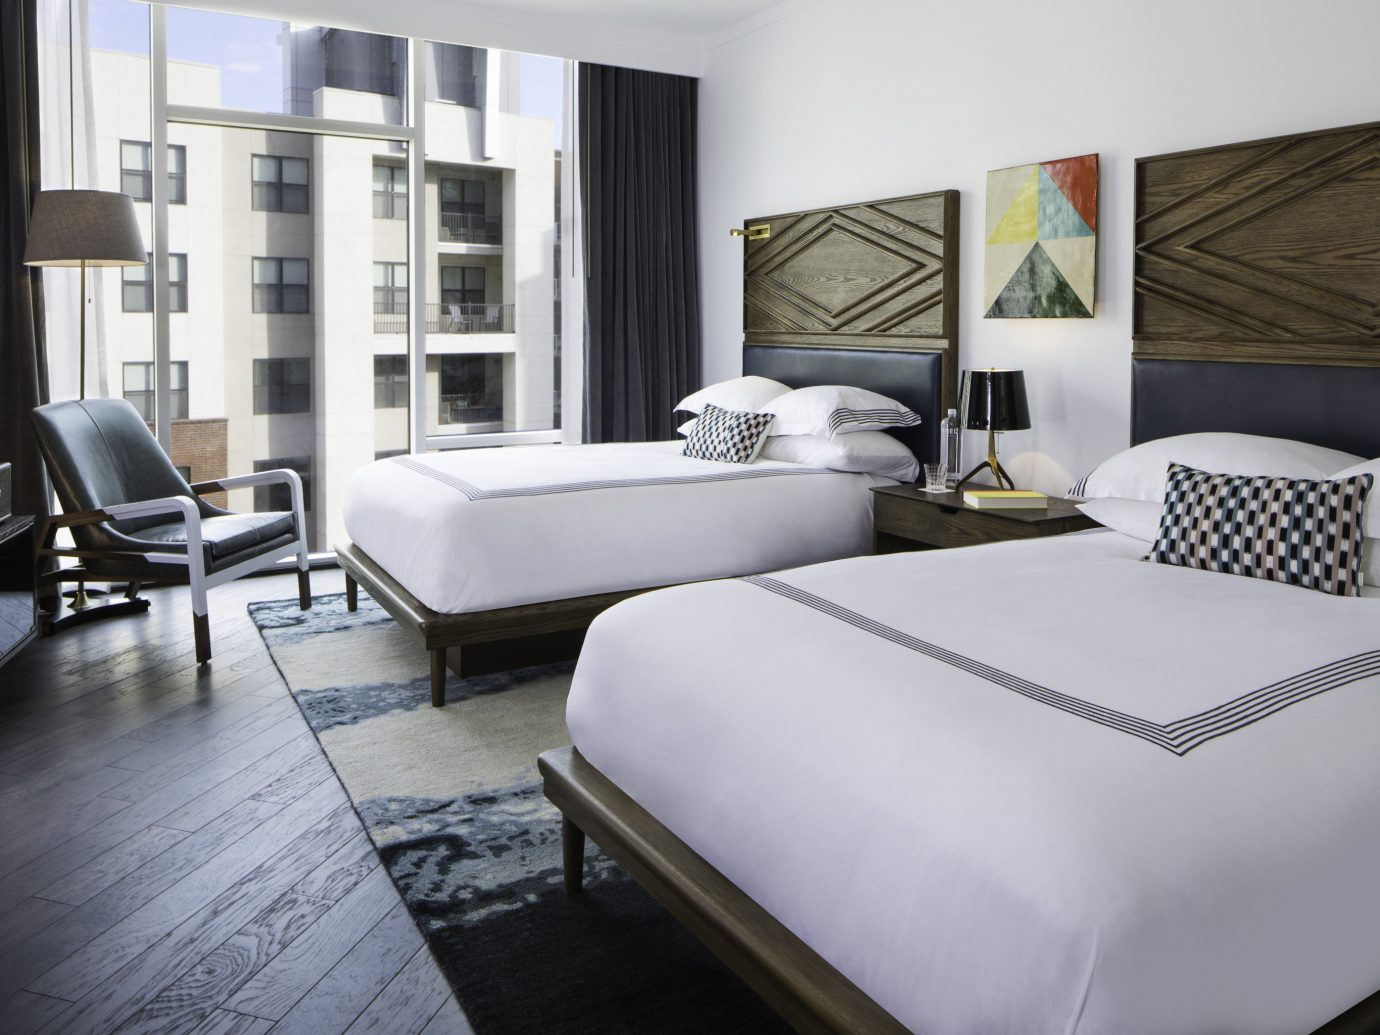 Hotels Trip Ideas indoor floor room sofa wall bed window property Living hotel living room Bedroom furniture interior design home Suite bed sheet real estate Design condominium pillow apartment decorated Modern